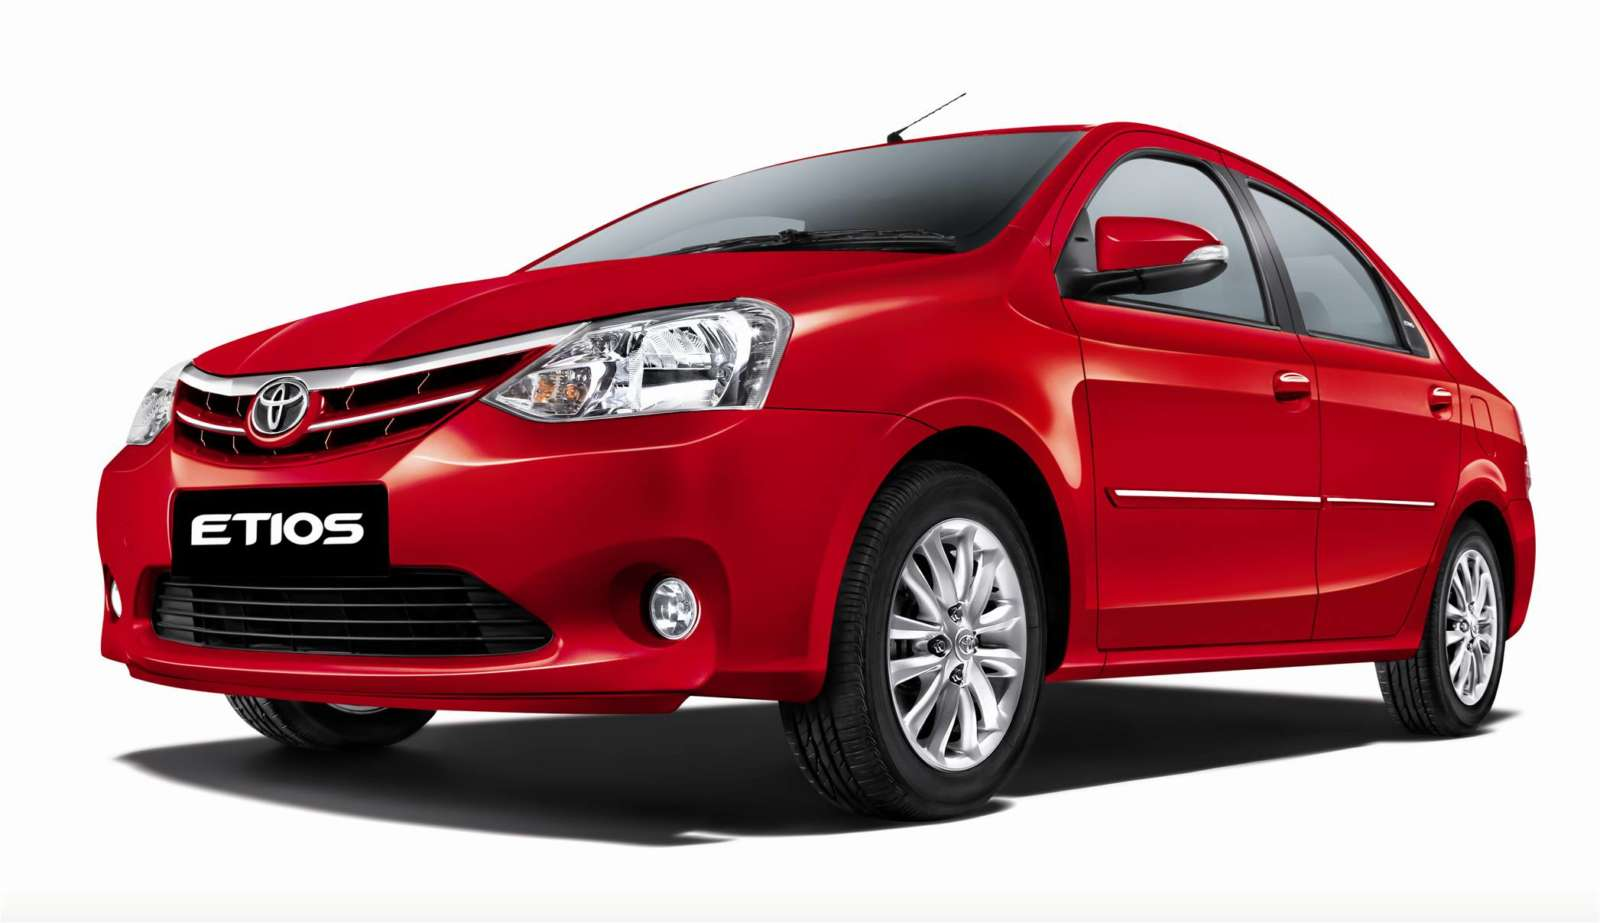 Tkm Launches Toyota Etios And Toyota Etios Liva Refresh Motoroids